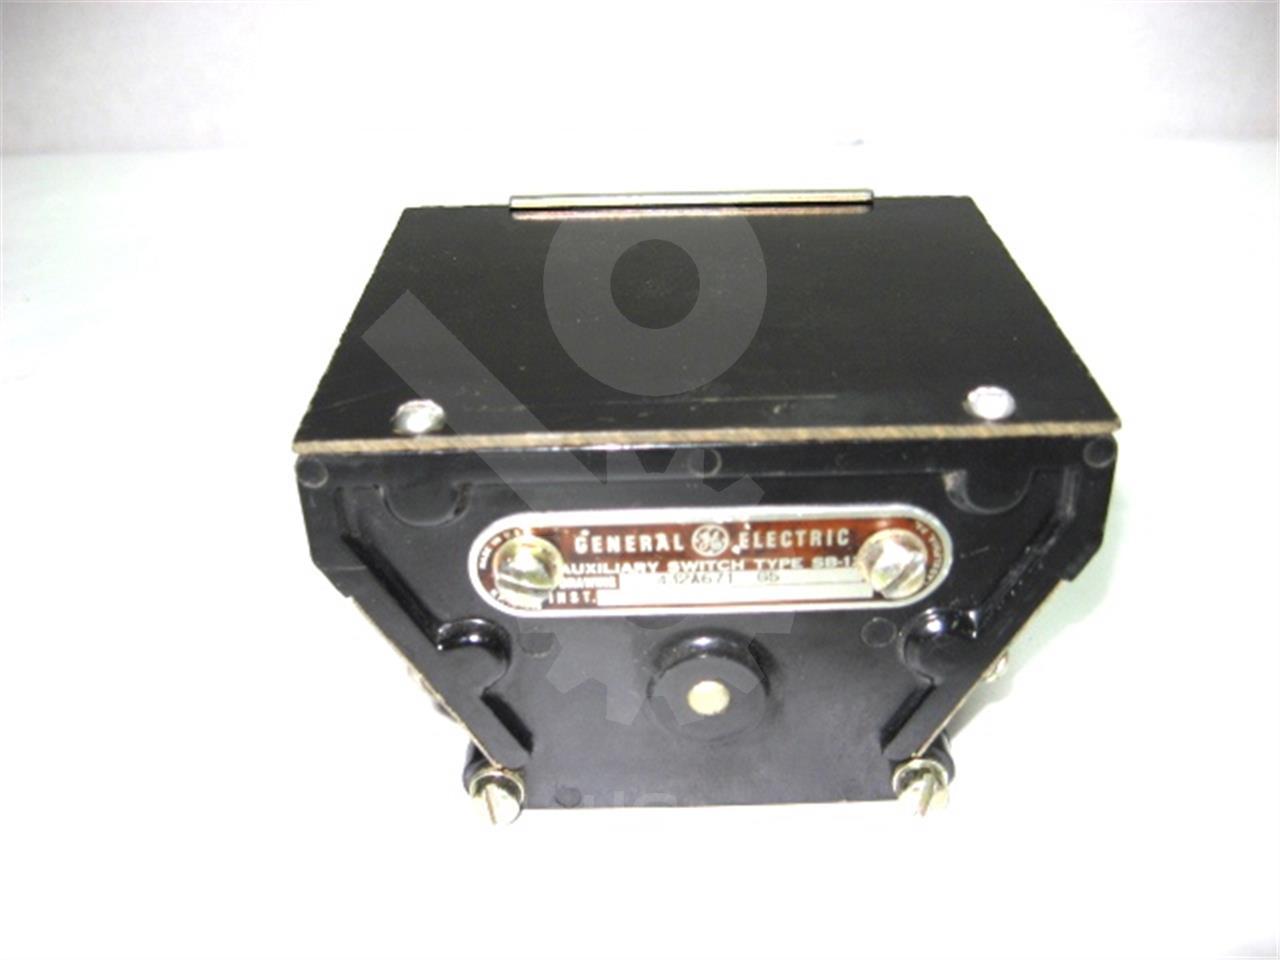 General Electric GE SB-12 AUXILIARY SWITCH 5NO/5NC